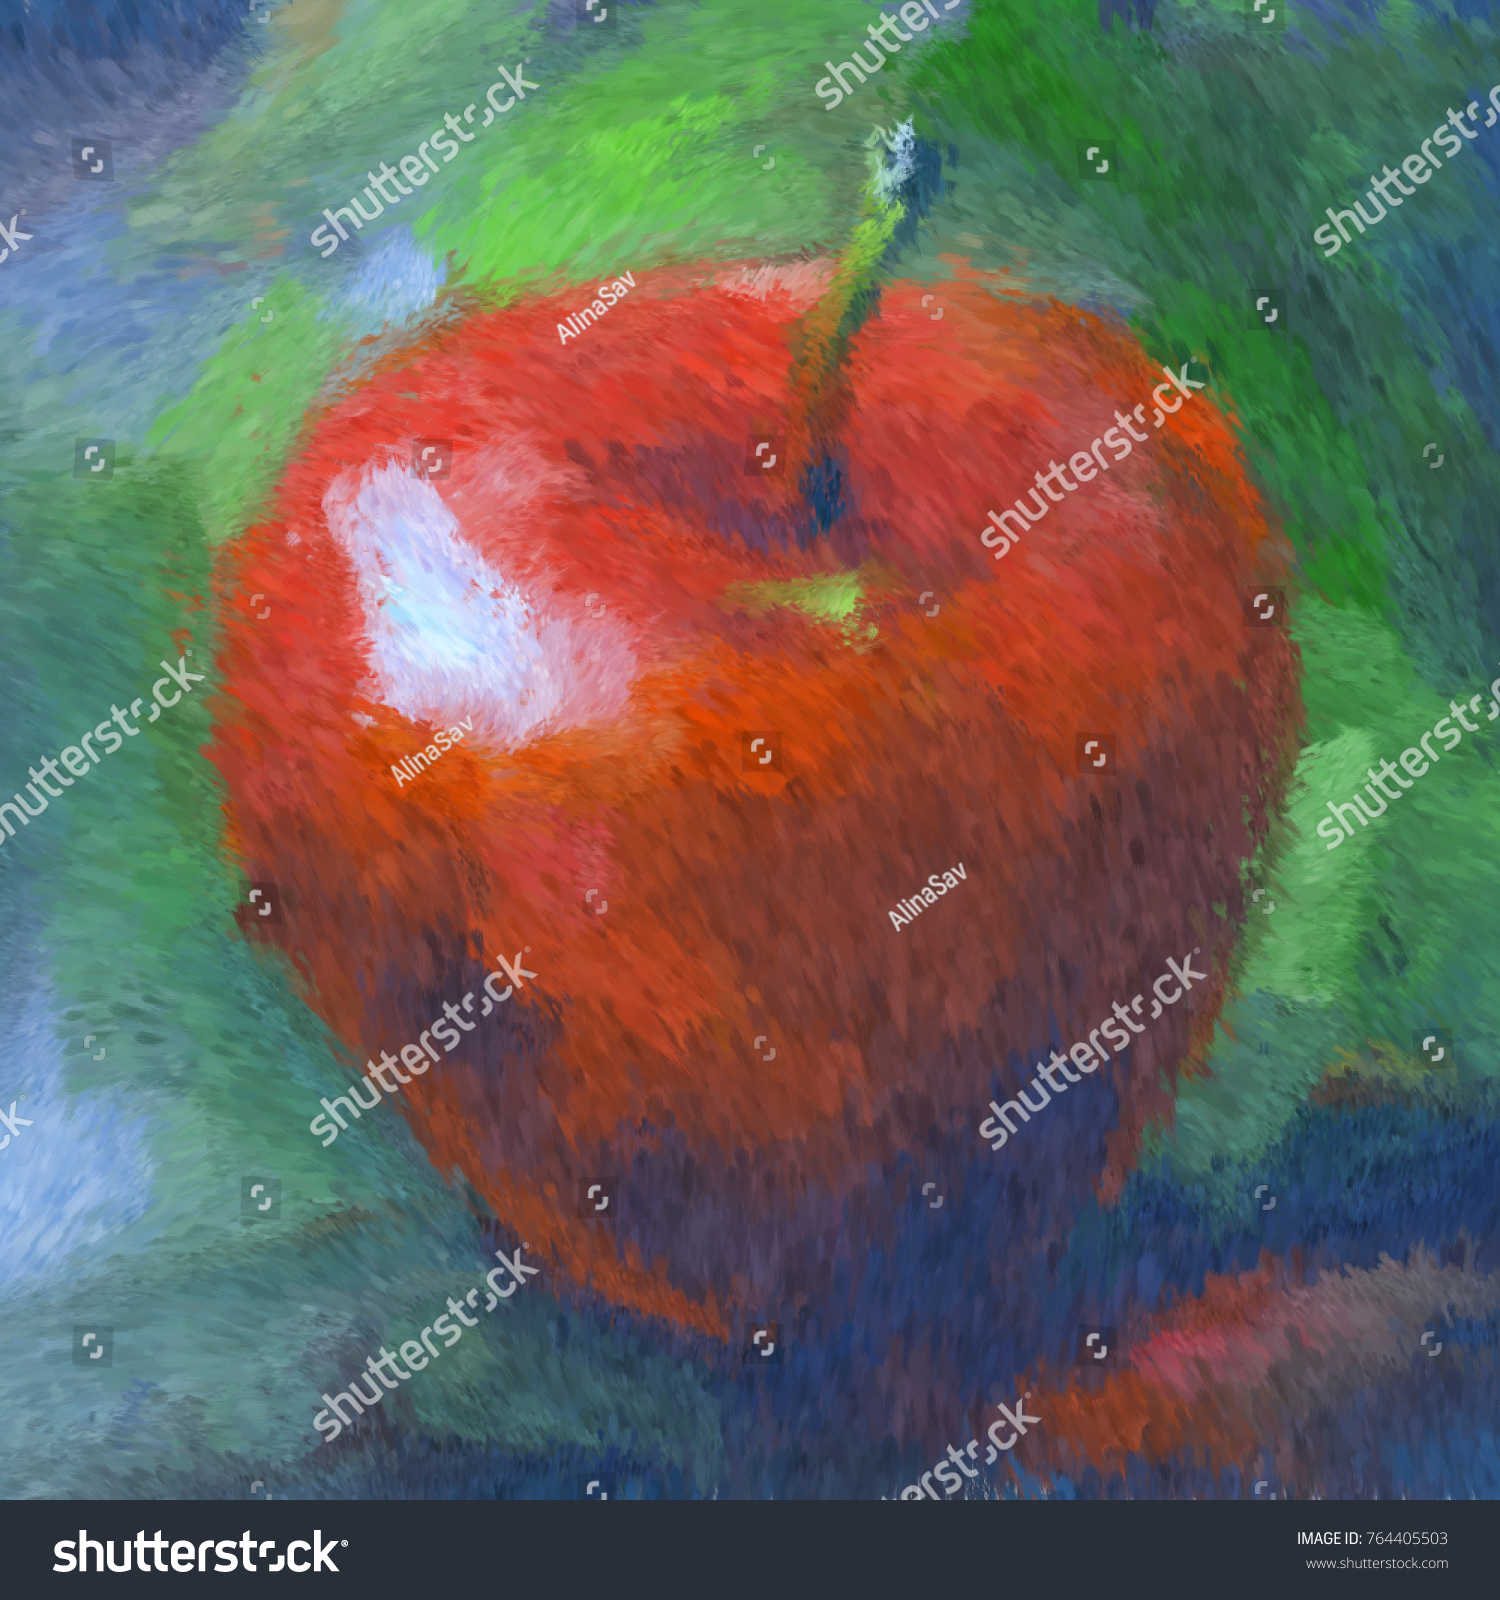 Red Apple Digital Oil Painting Impressionism Stock Illustration     Red apple digital oil painting impressionism